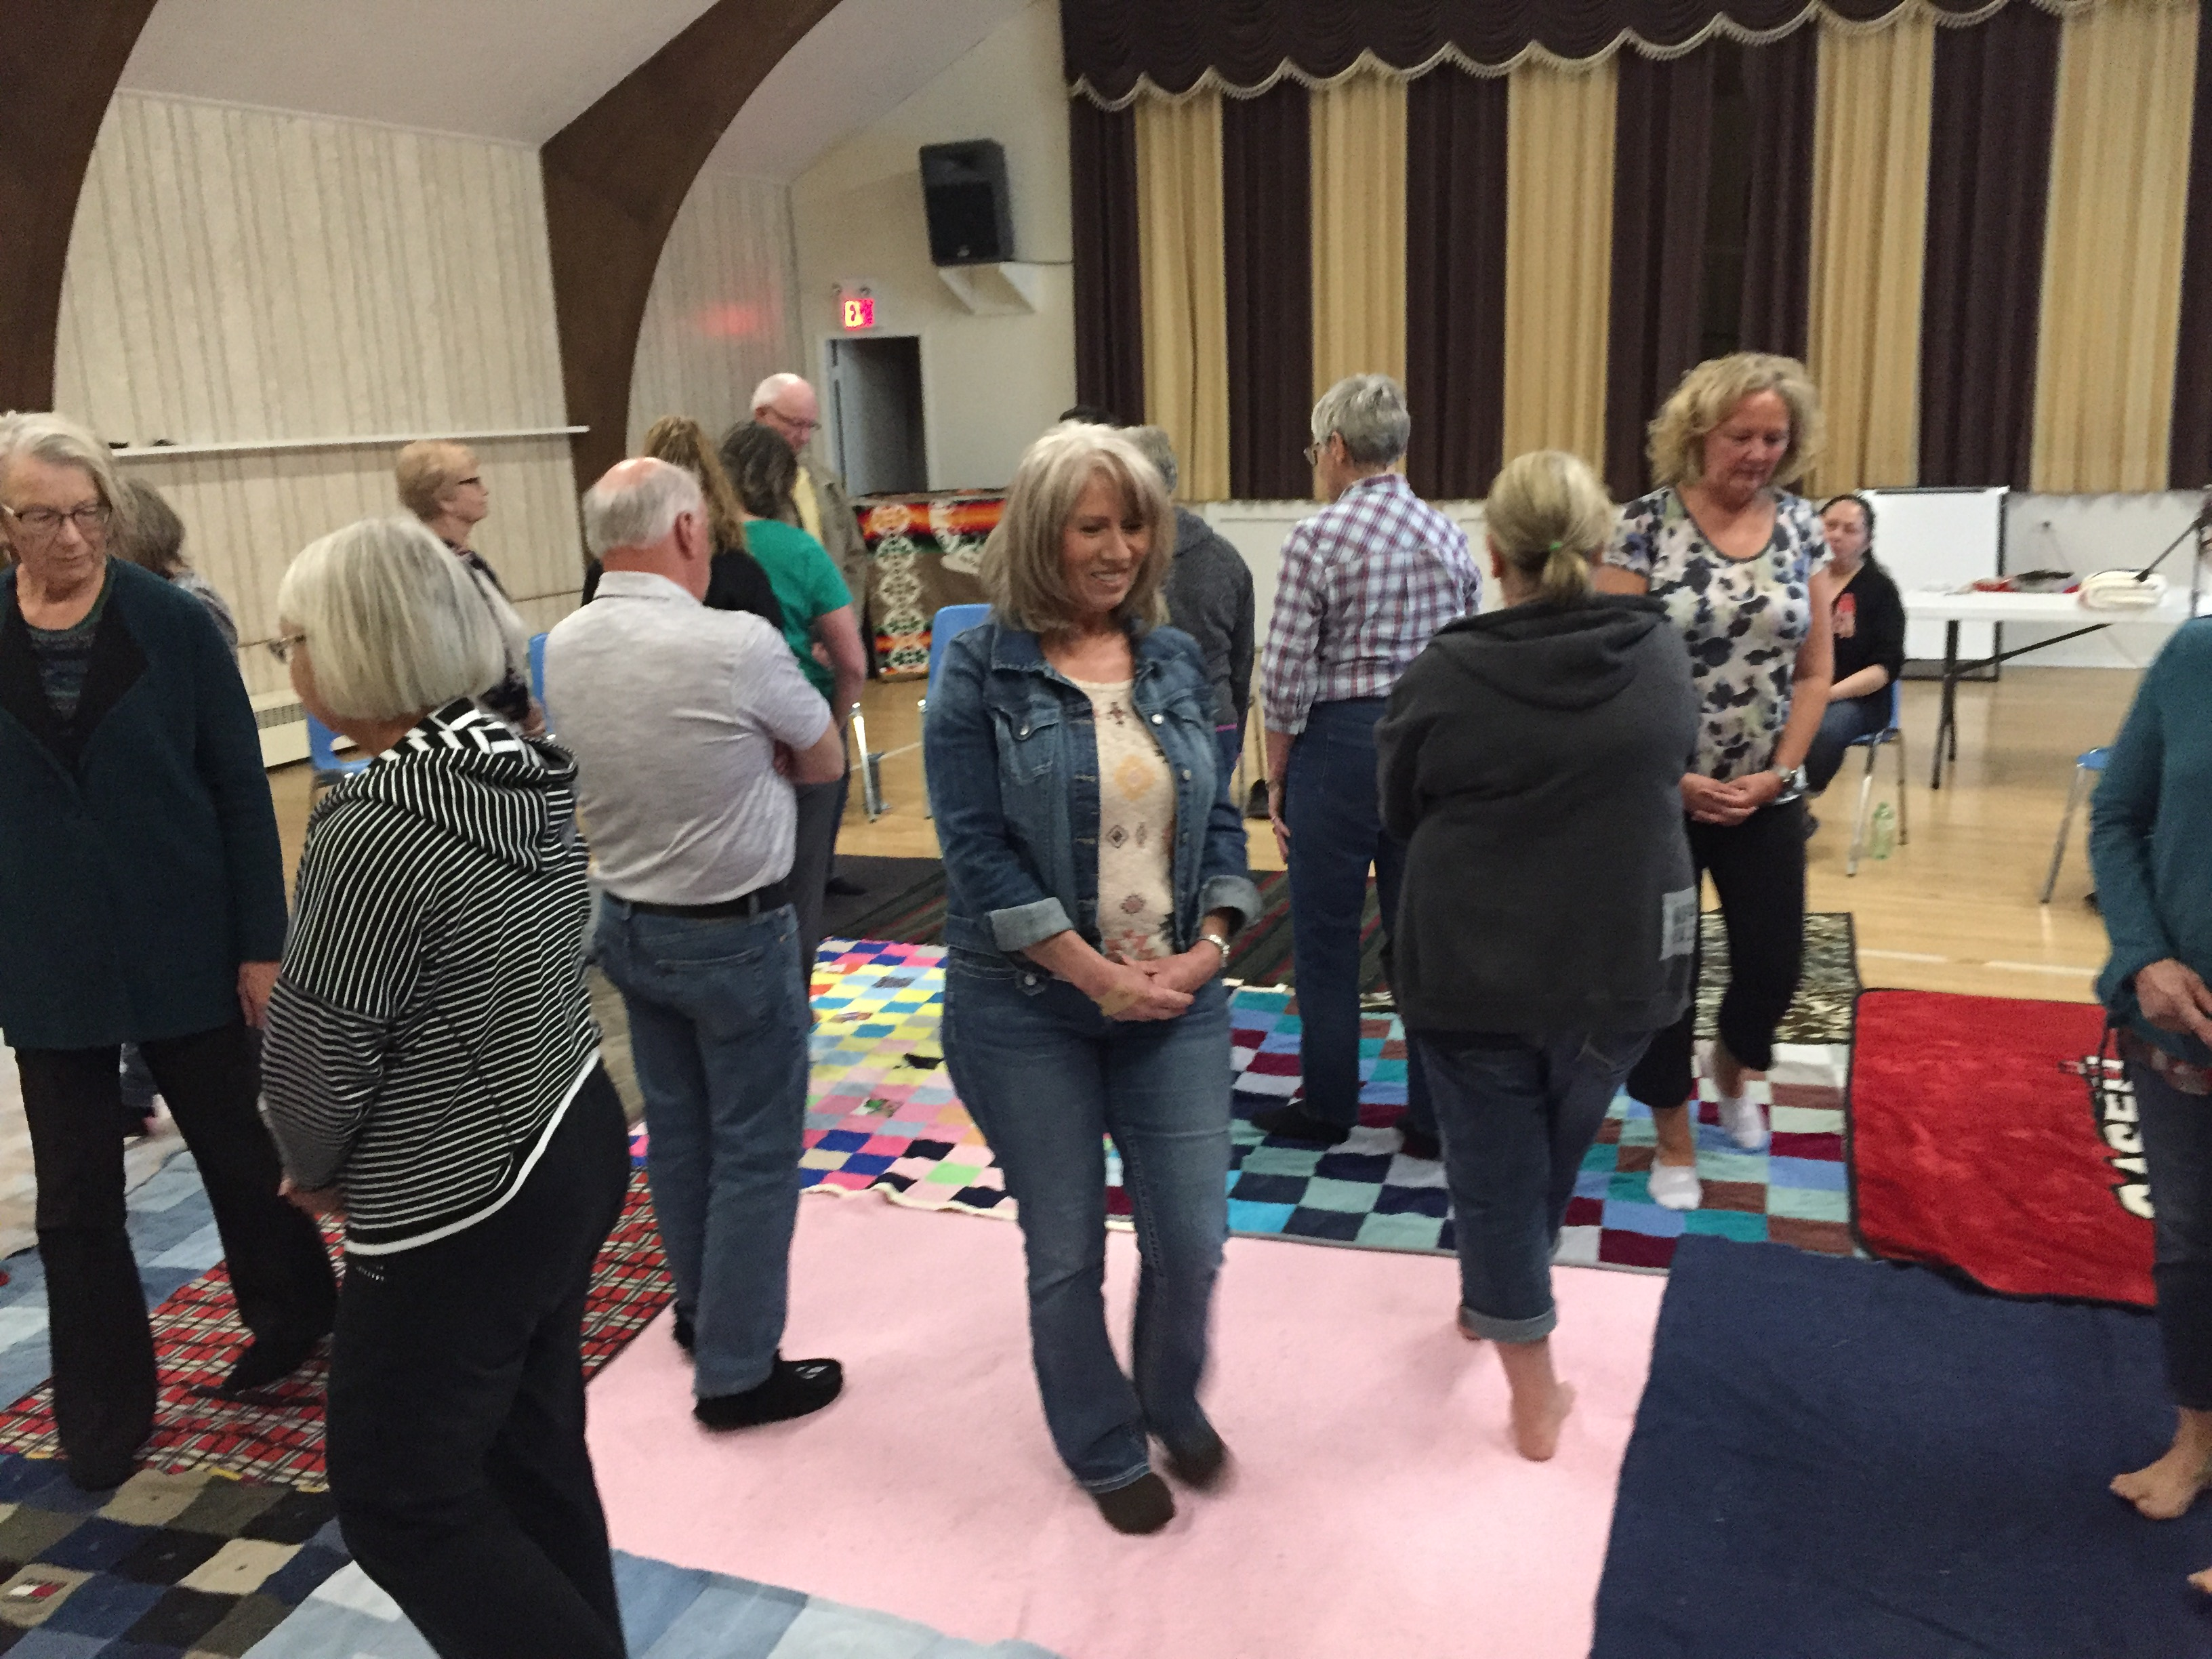 Kairos Blanket Exercise Elbow Apr 29, 2018